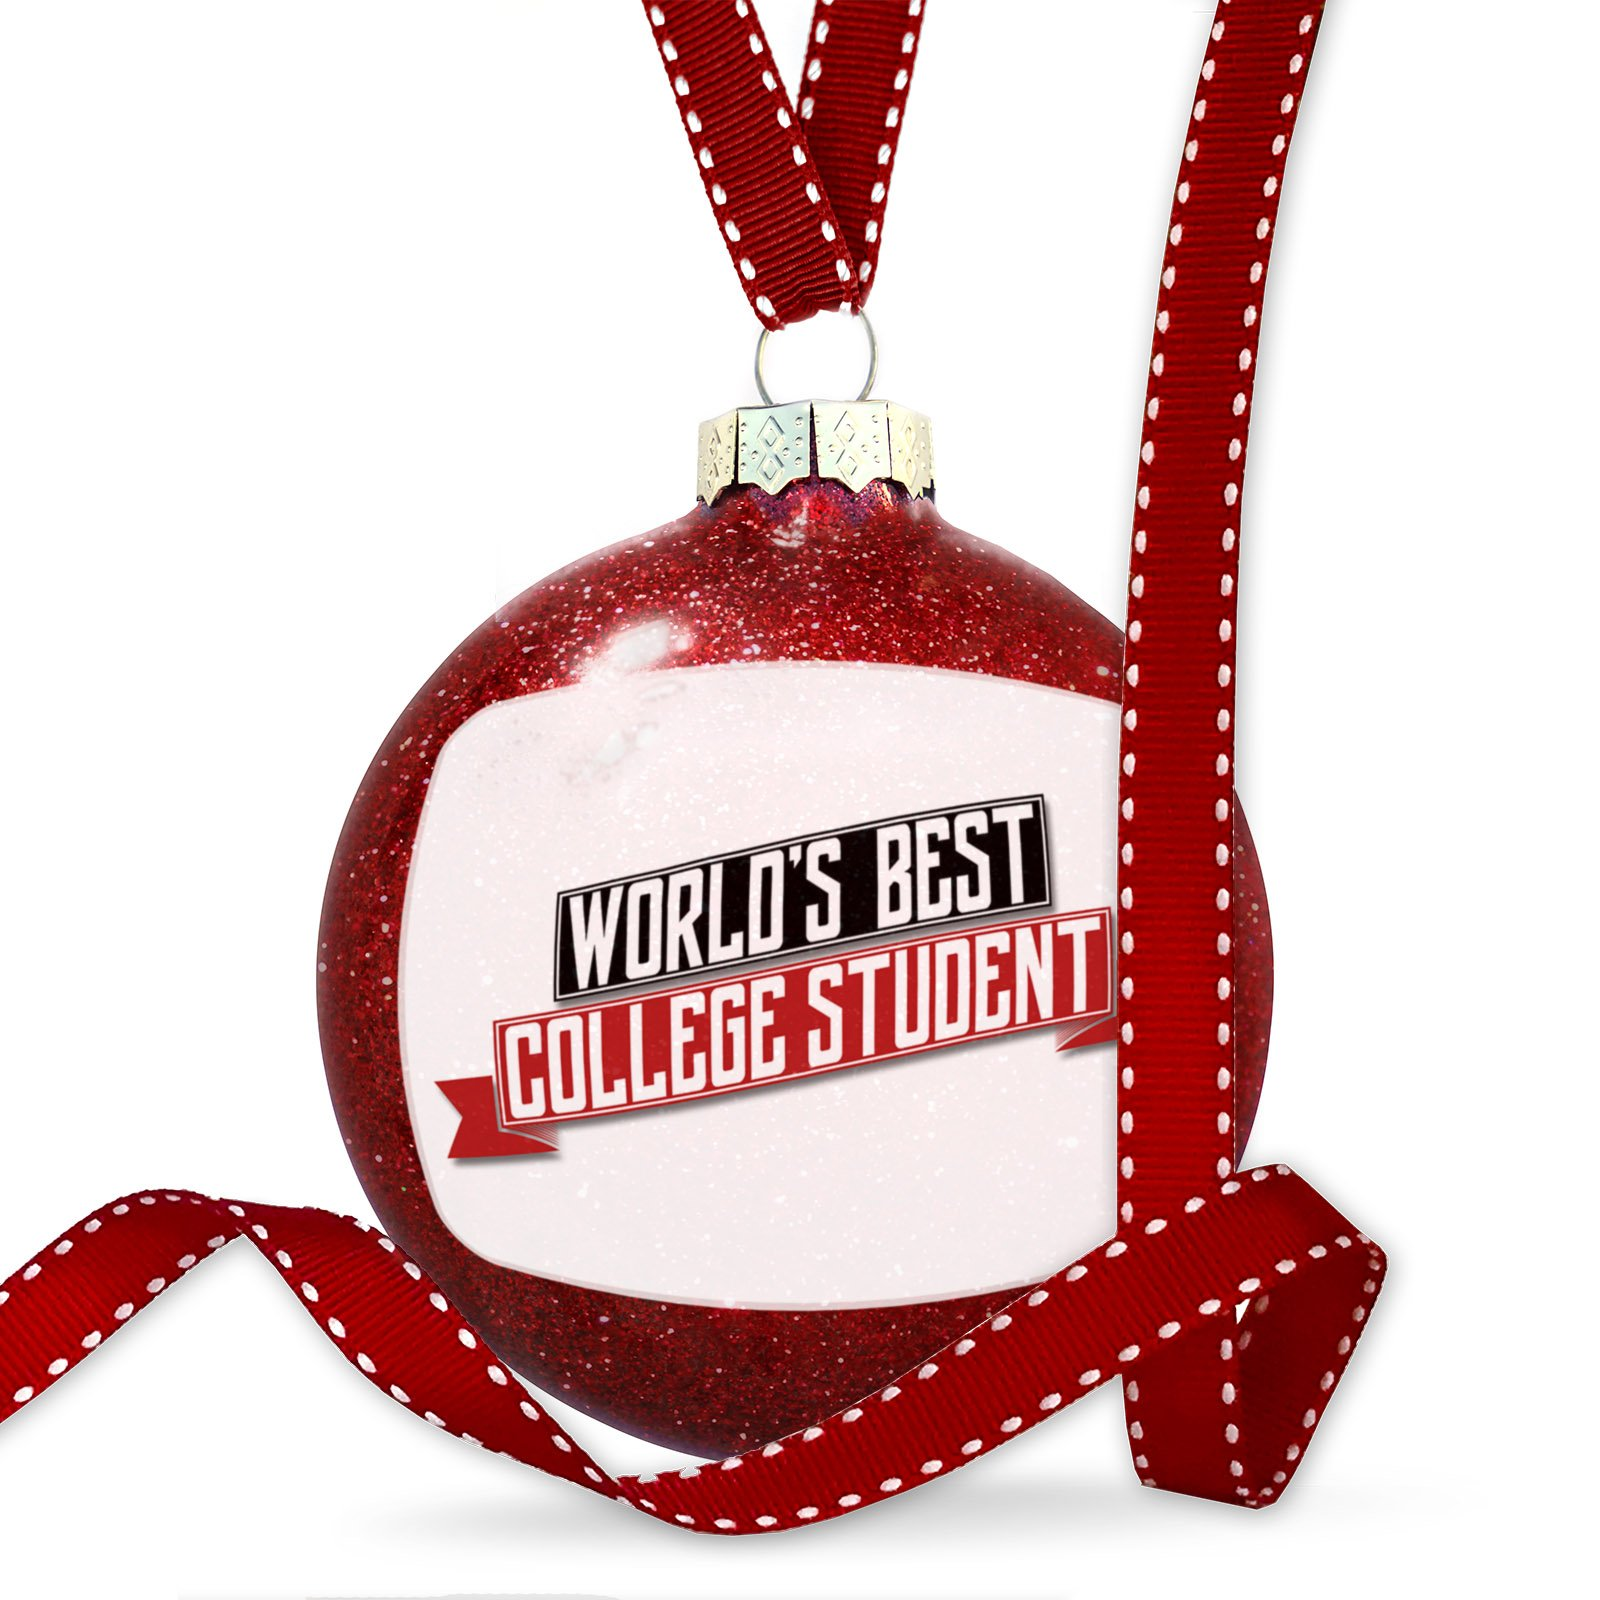 Christmas Decoration Worlds Best College Student Ornament